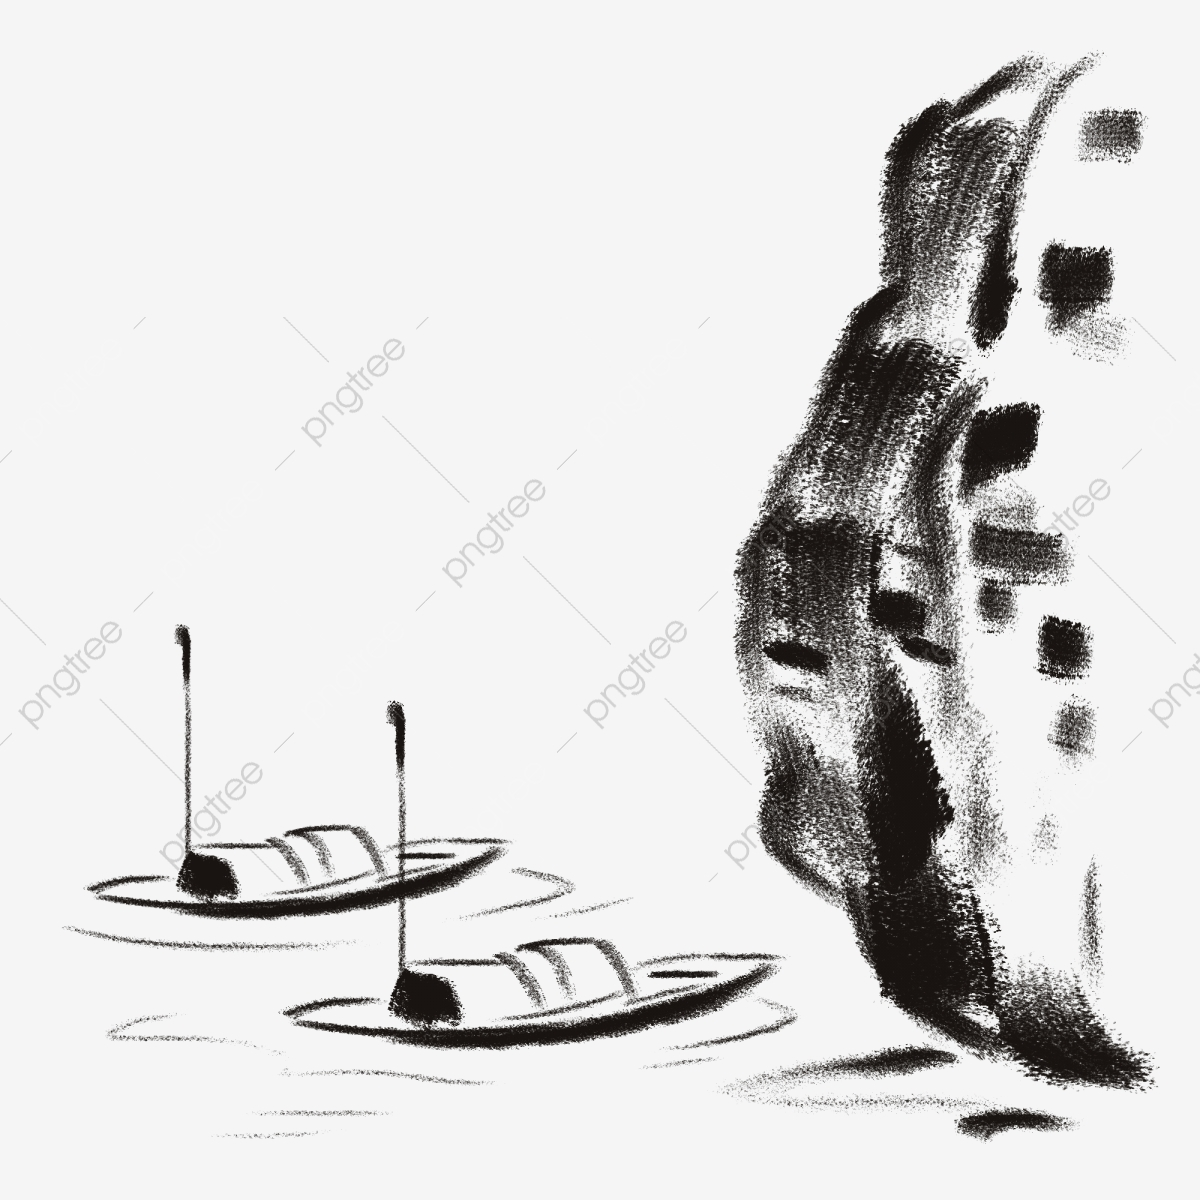 Ink Fishing Boat Moored Boat Antiquity Chinese Wind Fishing Boat Water Surface Lake Water Fisherman Png Transparent Clipart Image And Psd File For Free Download